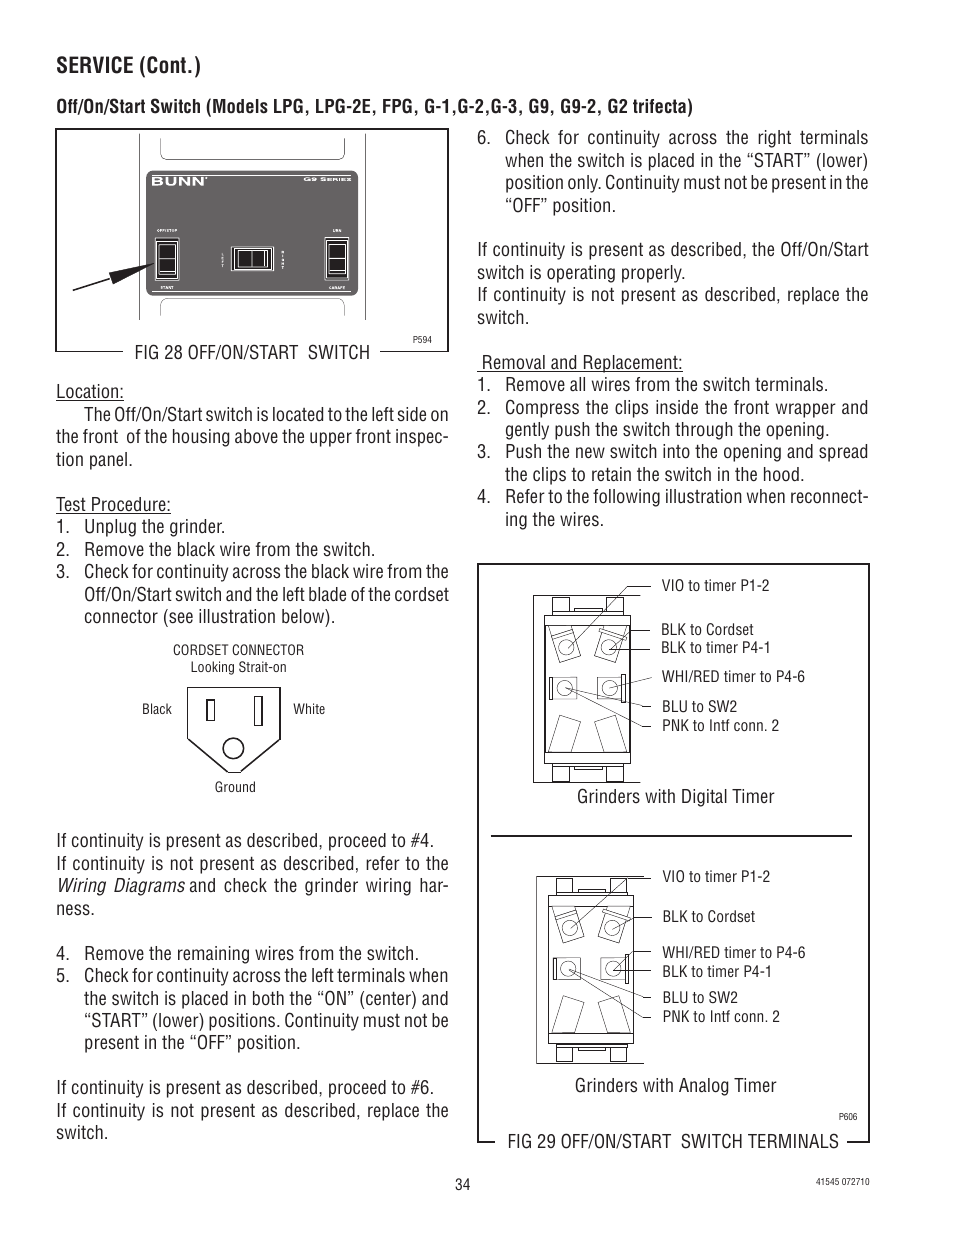 Service (cont.) | Bunn G9-2T DBC User Manual | Page 34 / 79 ... on switch wiring diagram, motor wiring diagram, contactor wiring diagram, tachometer wiring diagram, i/o module wiring diagram, remote control wiring diagram, ac drive wiring diagram, software wiring diagram, controller wiring diagram, refrigerator wiring diagram, hour meter wiring diagram, power wiring diagram, thermocouple wiring diagram, battery charger wiring diagram, plc wiring diagram, sensor wiring diagram, heater wiring diagram, toaster oven wiring diagram, control panel wiring diagram, heating element wiring diagram,